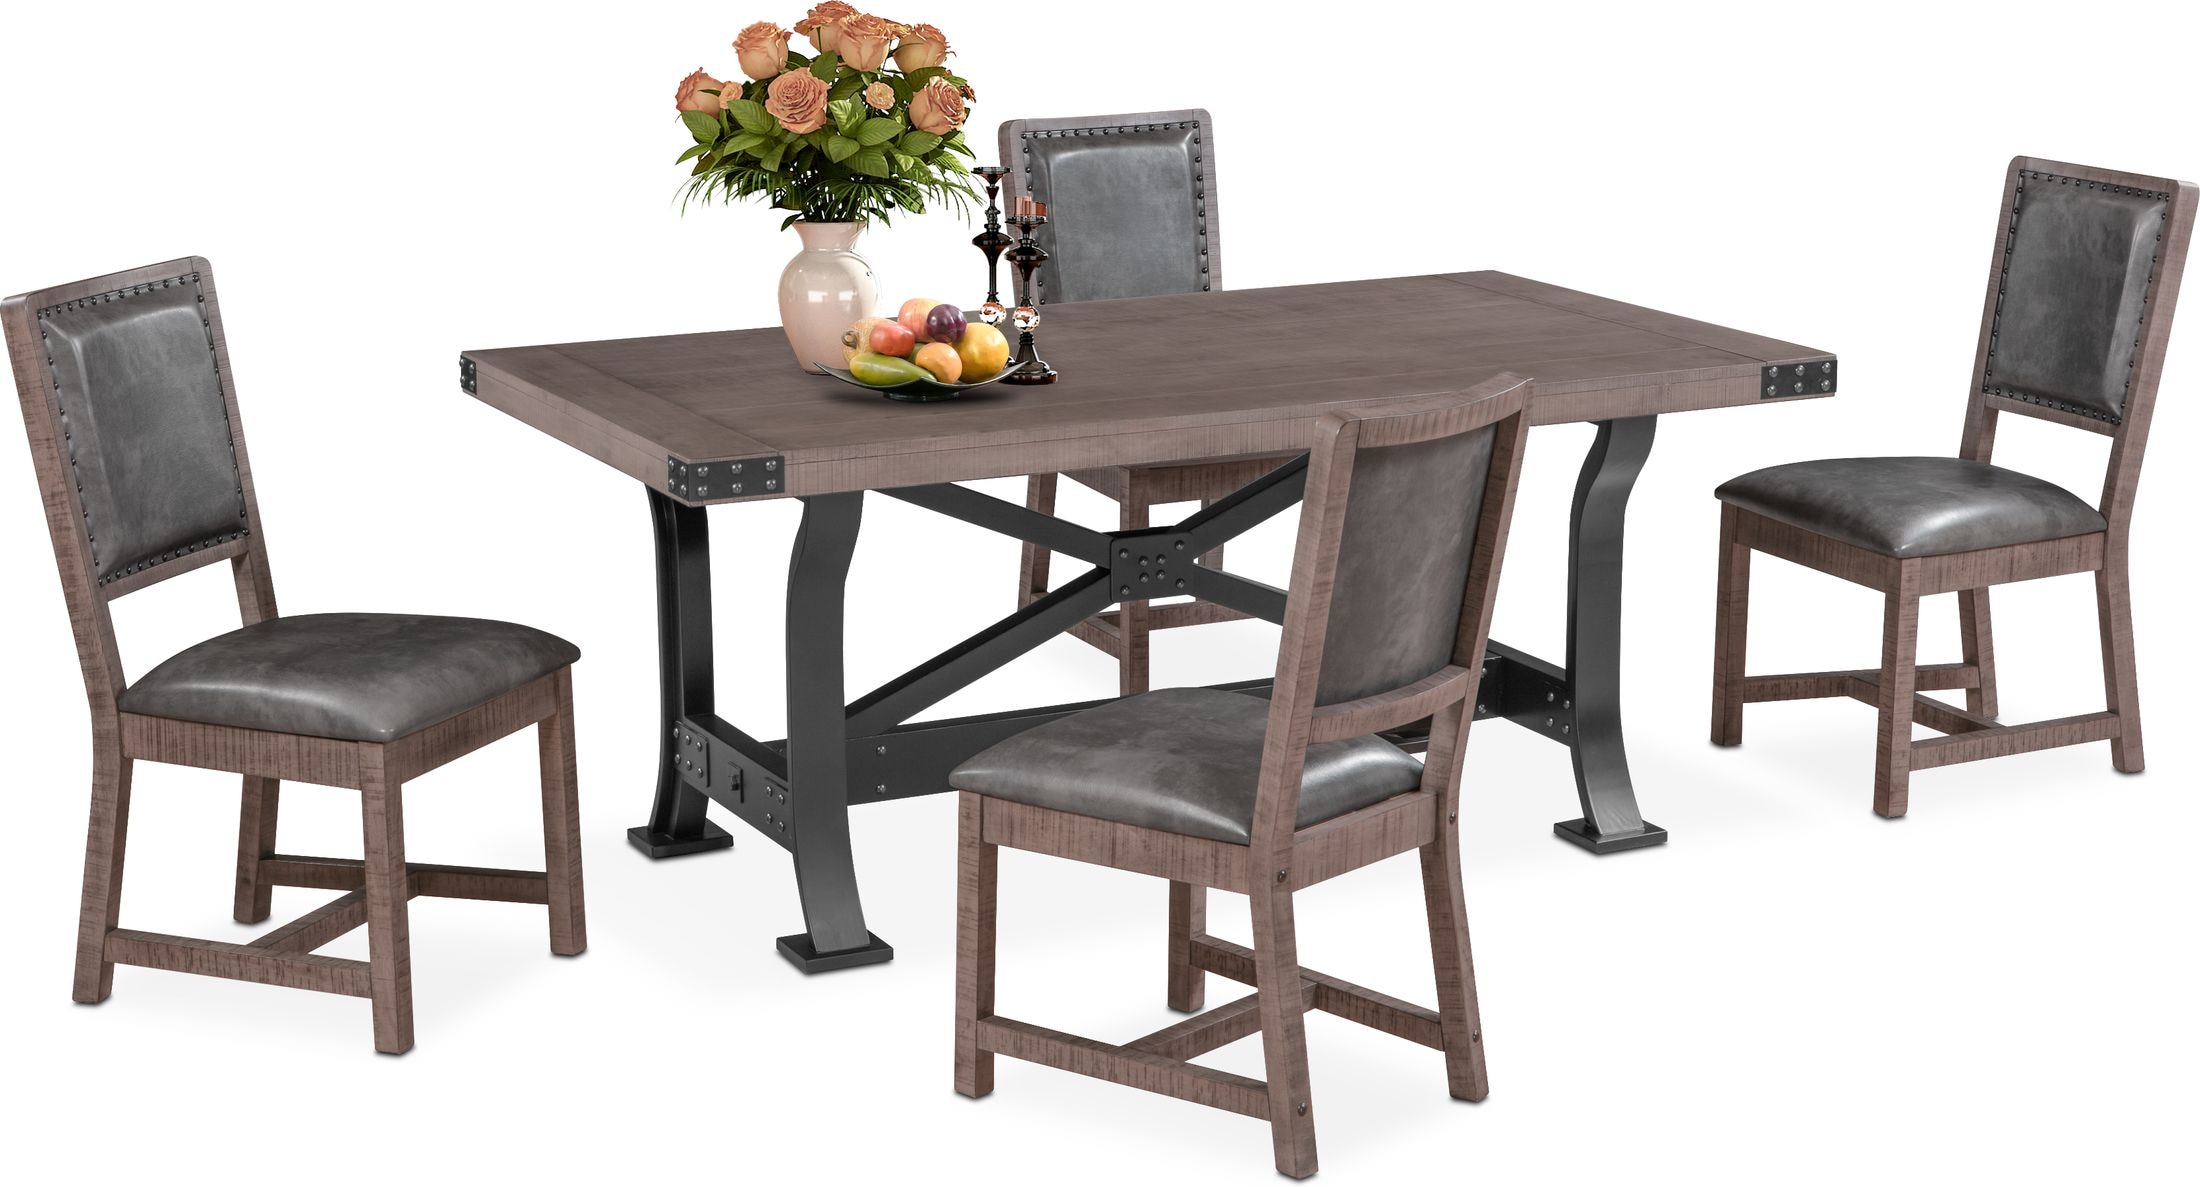 Dining Room Furniture - Newcastle Dining Table and 4 Side Chairs